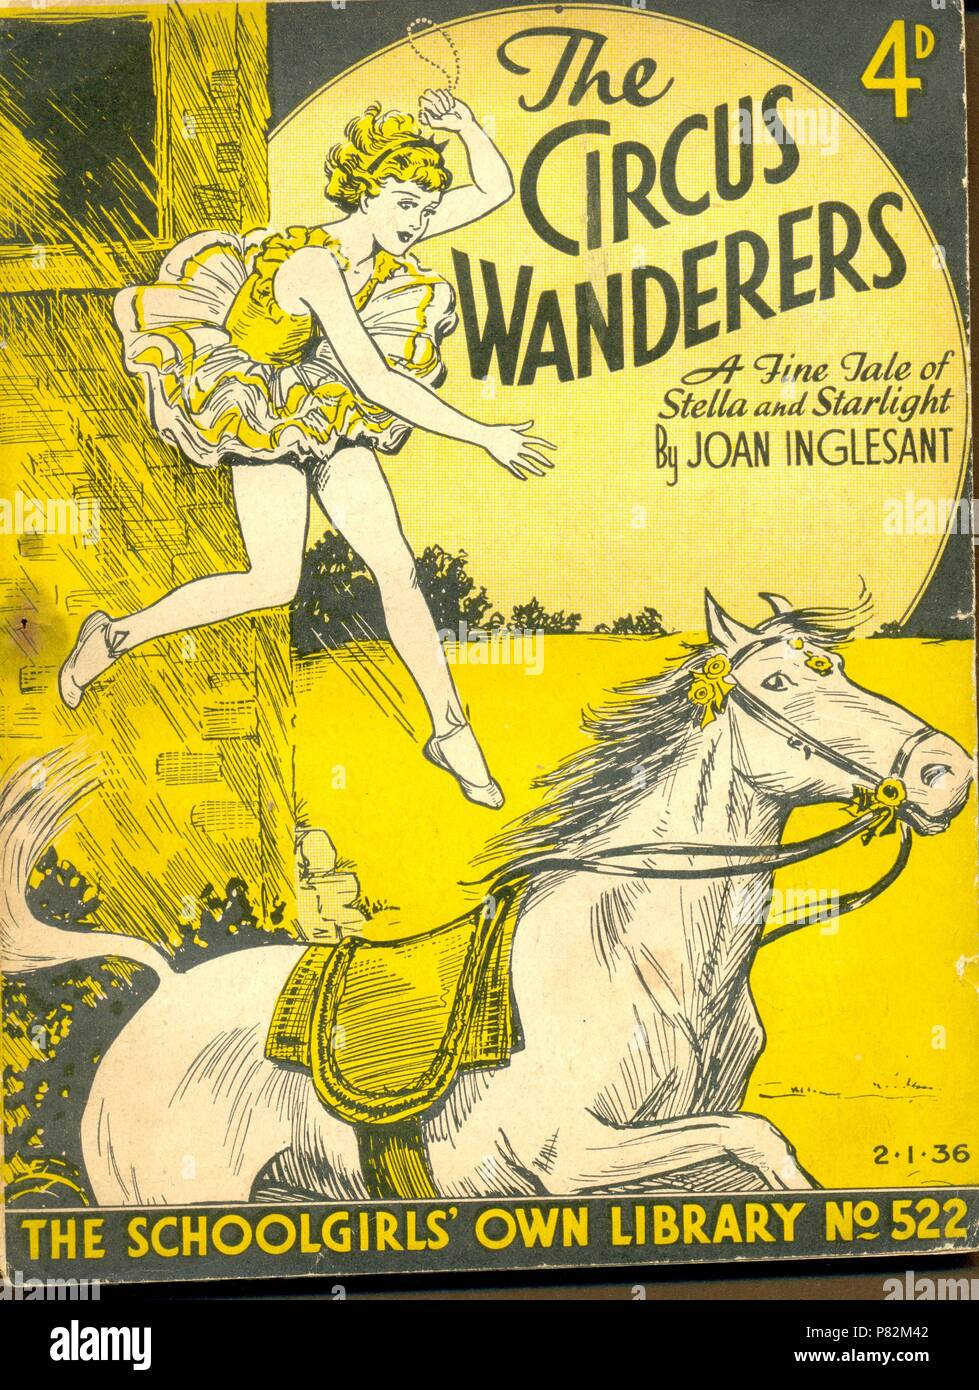 The Circus Wanderers, A Fine Tale of Stella and Starlight by Joan Inglesant.    No 522 in The Schoolgirls' Own Library - Stock Image